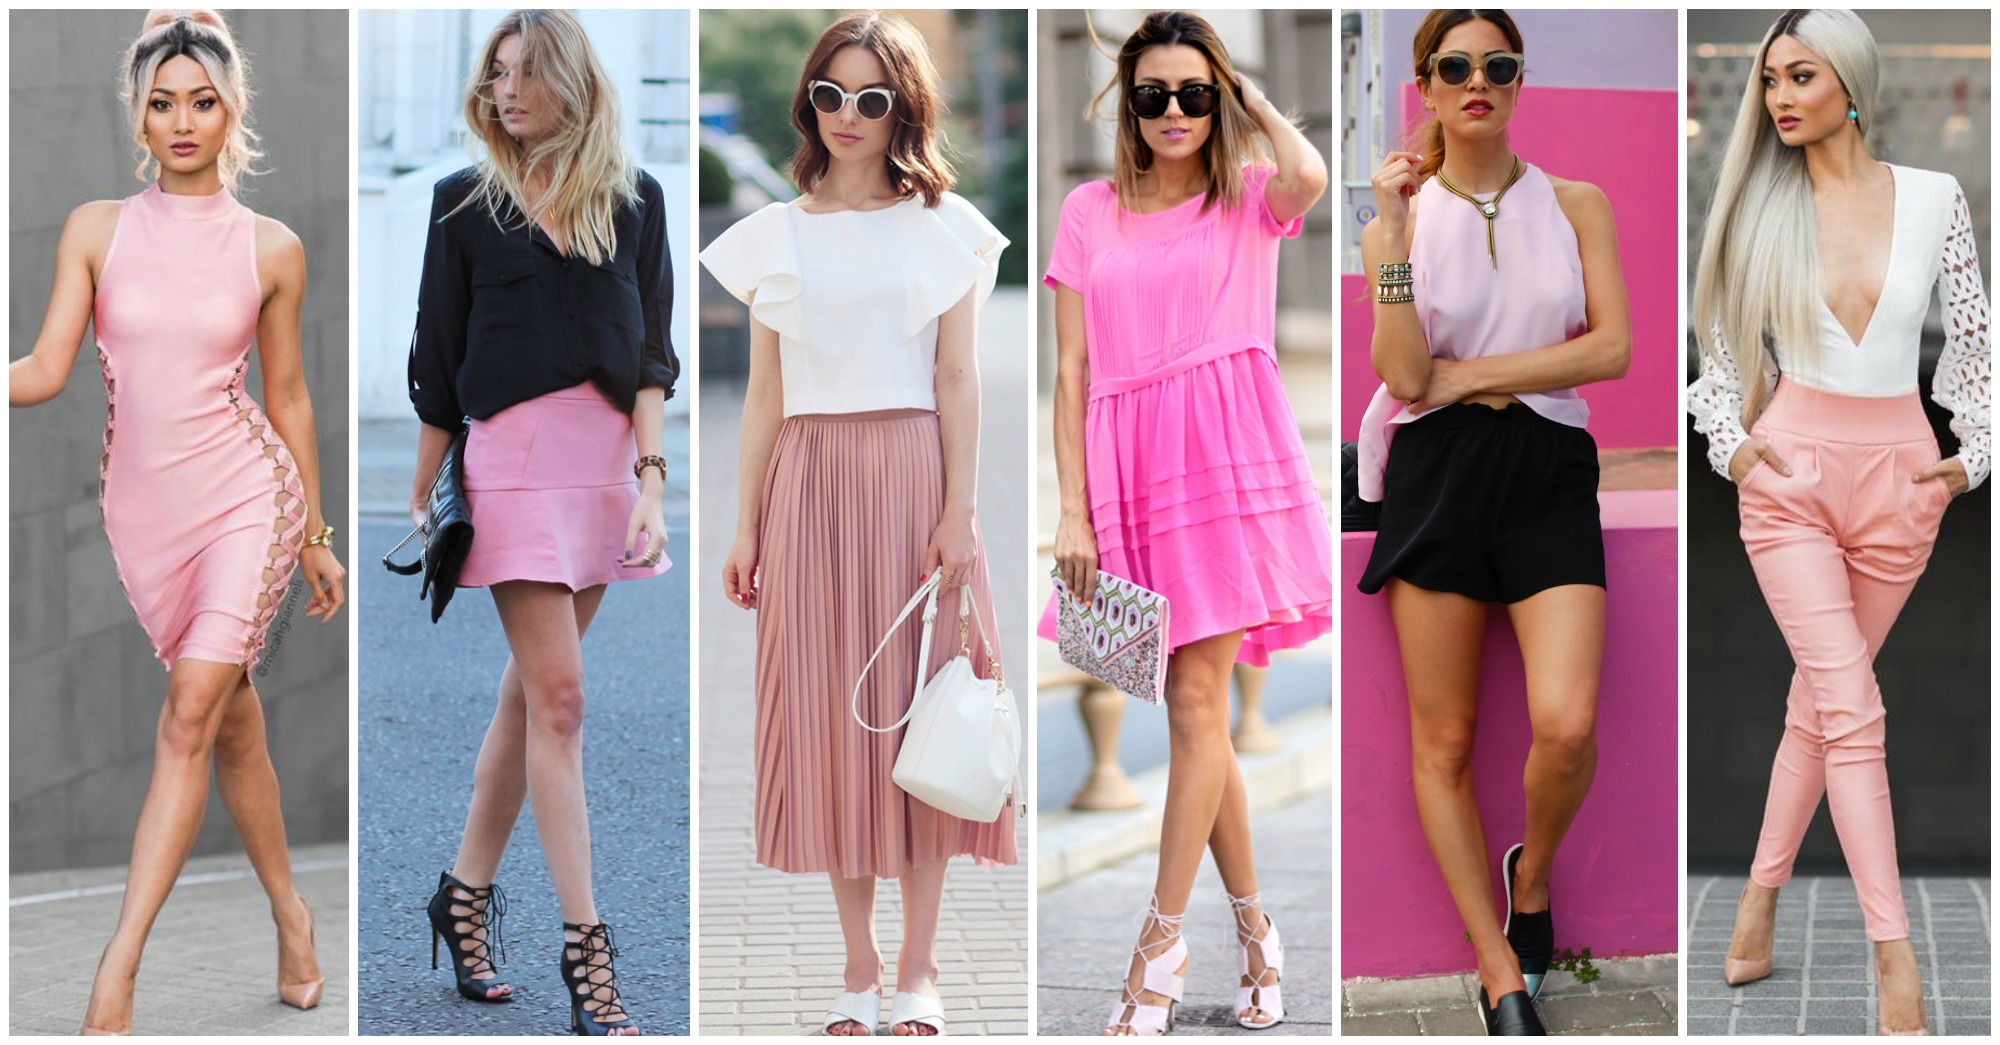 16 Lovely Ways to Wear Pink and Look Fashionable